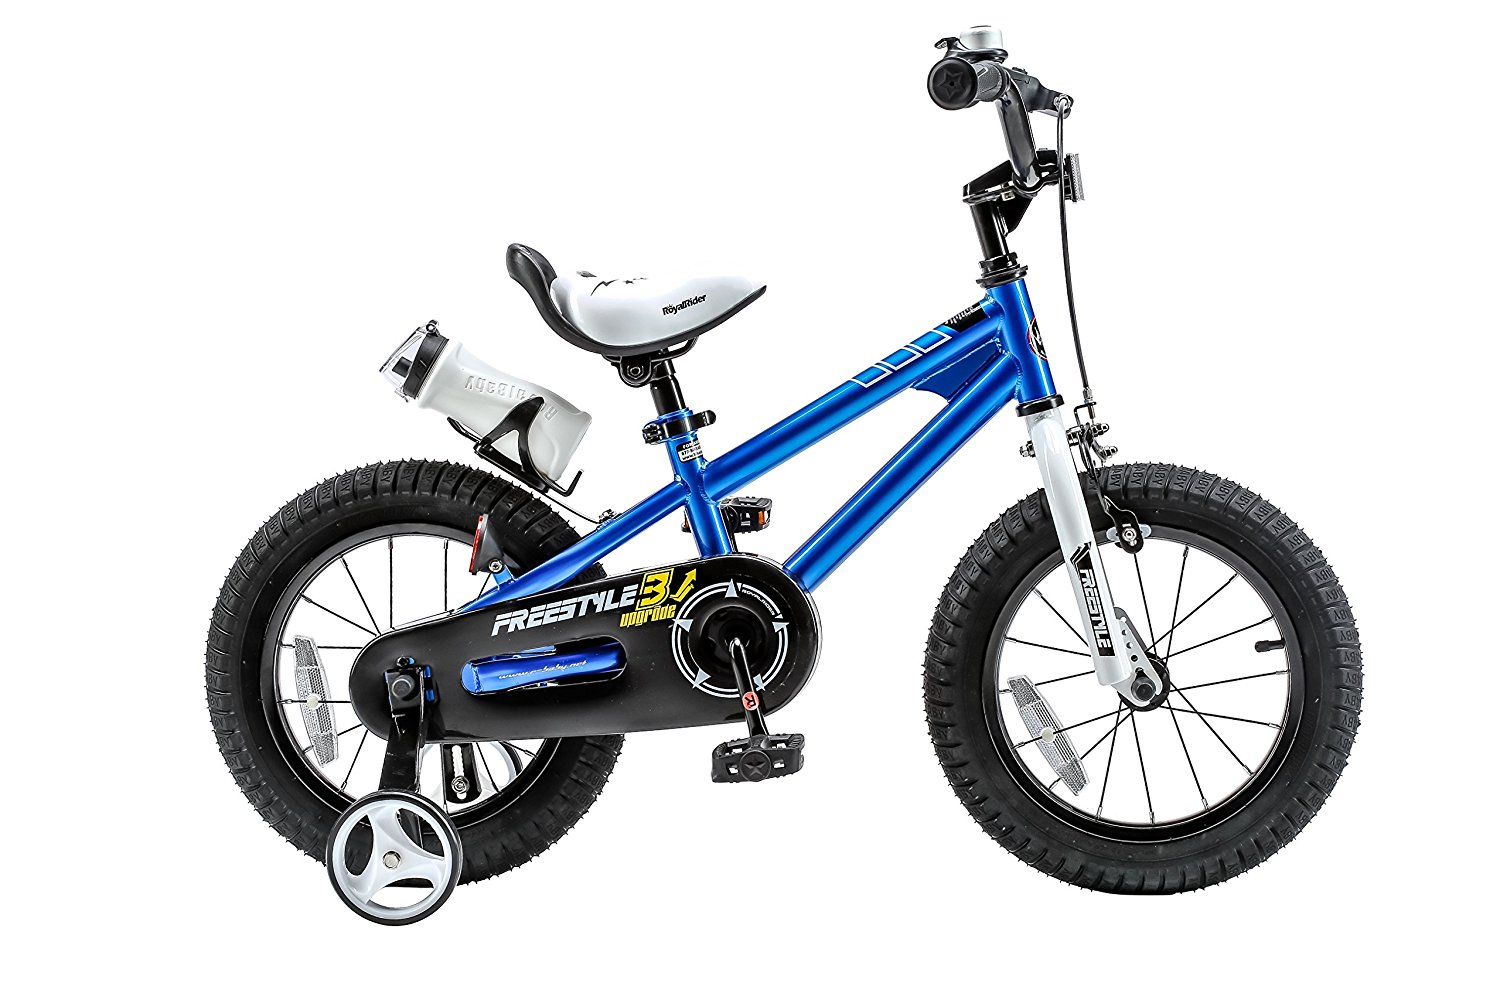 Review of RoyalBaby BMX Freestyle Kid's Bike, 12-14-16-18 inch wheels, six colors available